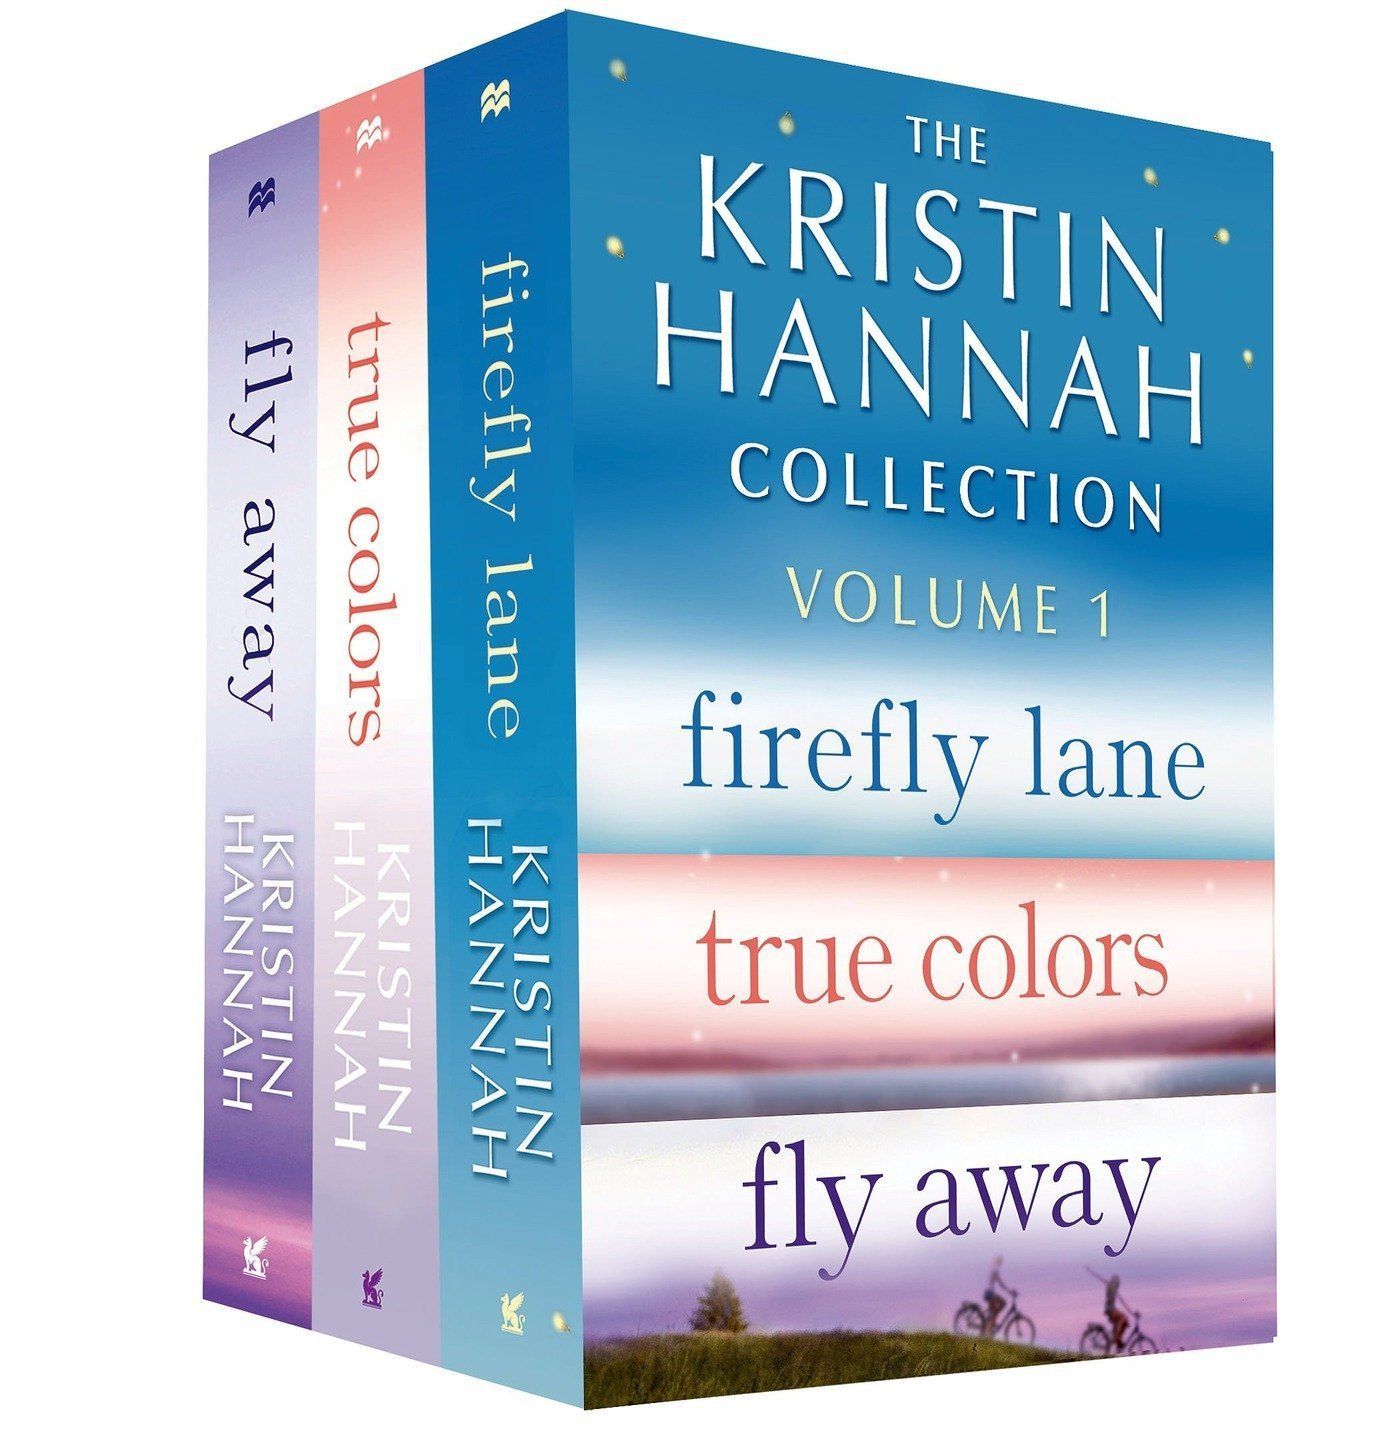 From the bestselling author kristin hannah comes a